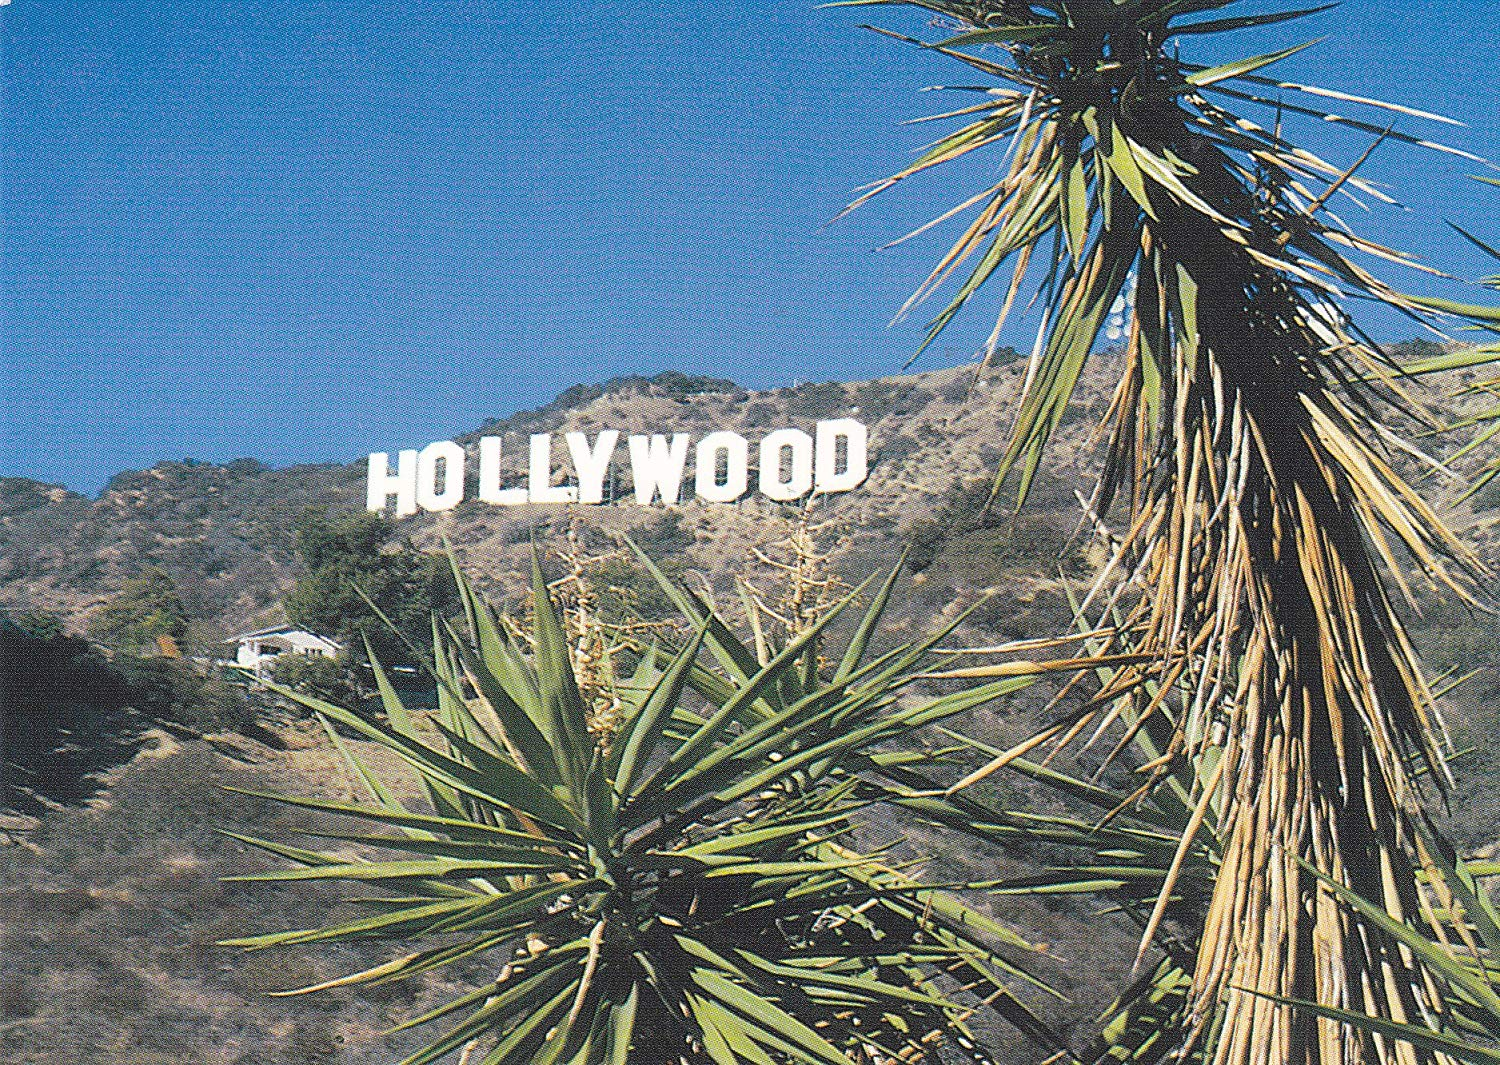 B&NLA244 LA244 View of Hollywood Sign Postcard . ... From Hibiscus Express